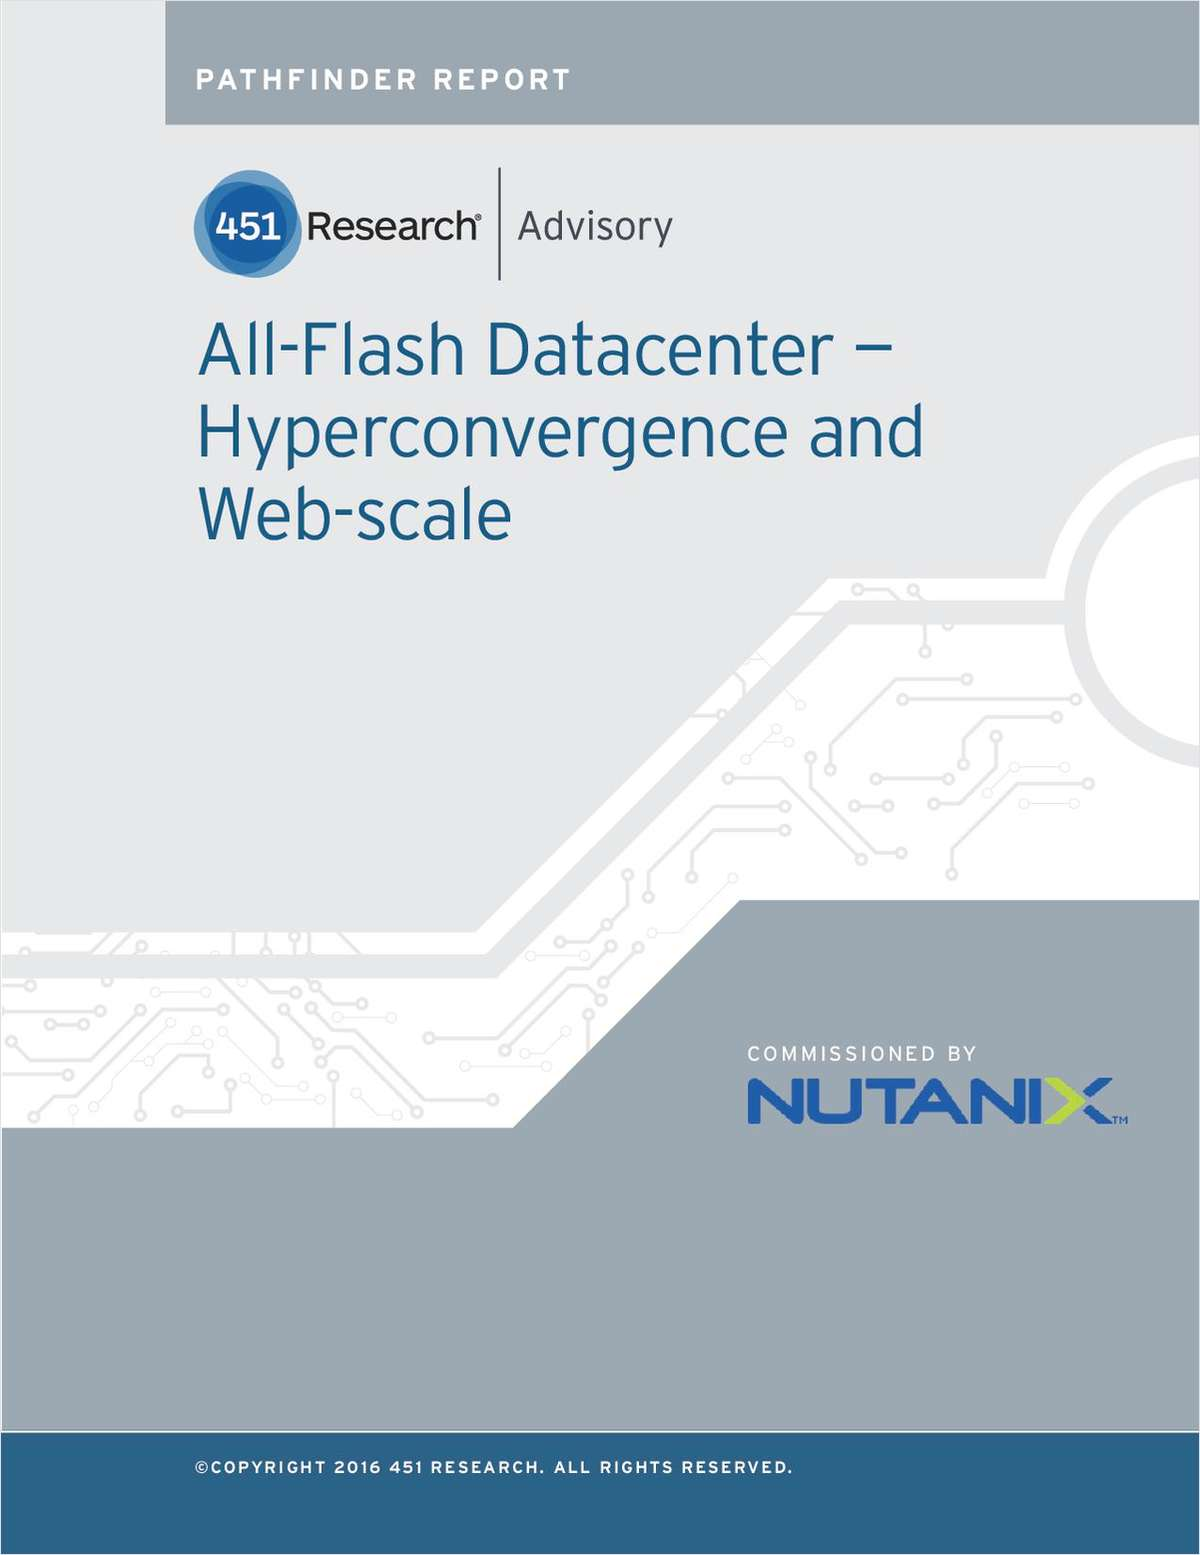 451 Pathfinder Report on Flash and Hyperconvergence